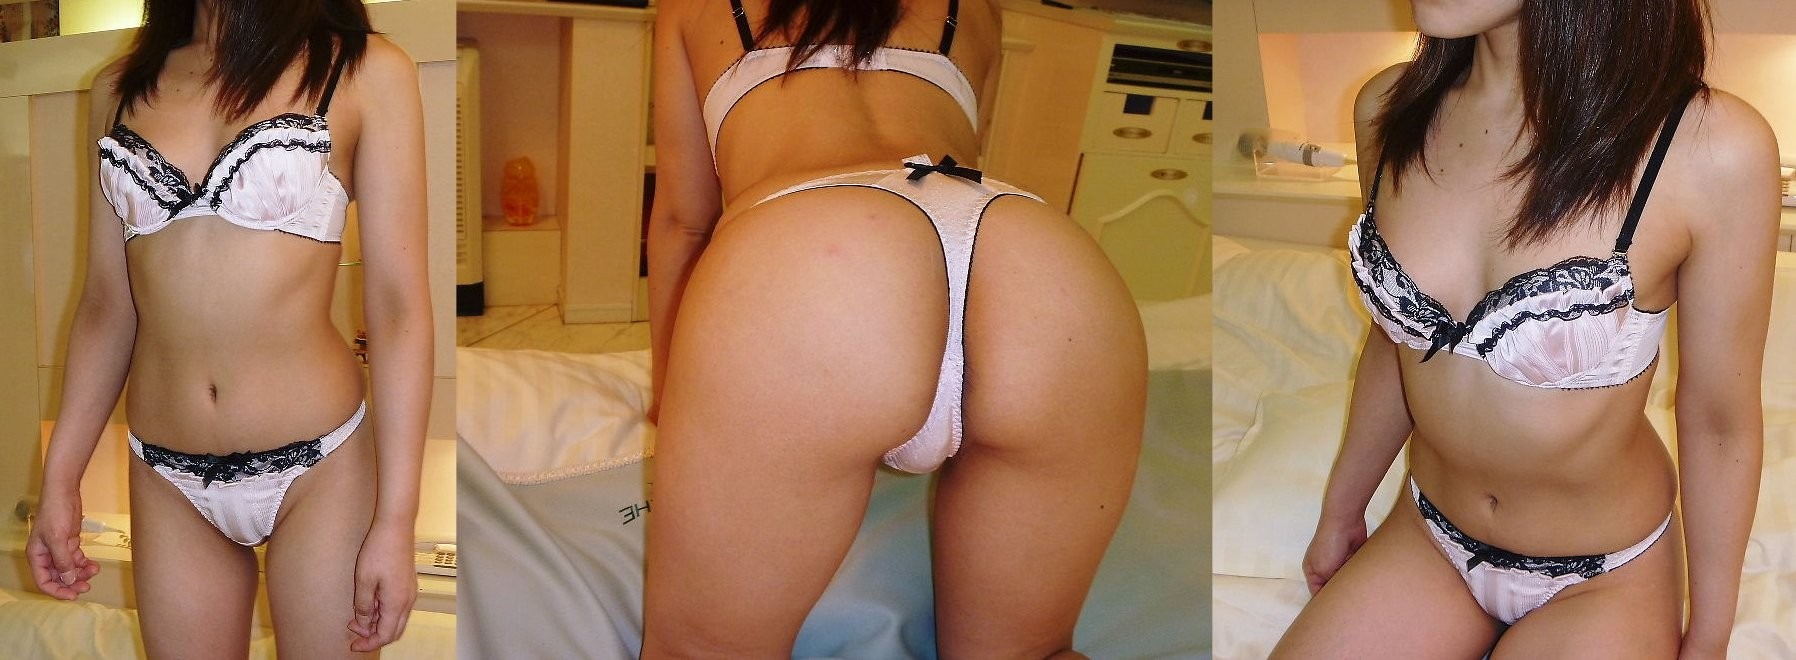 Panty coupled with Cameltoes